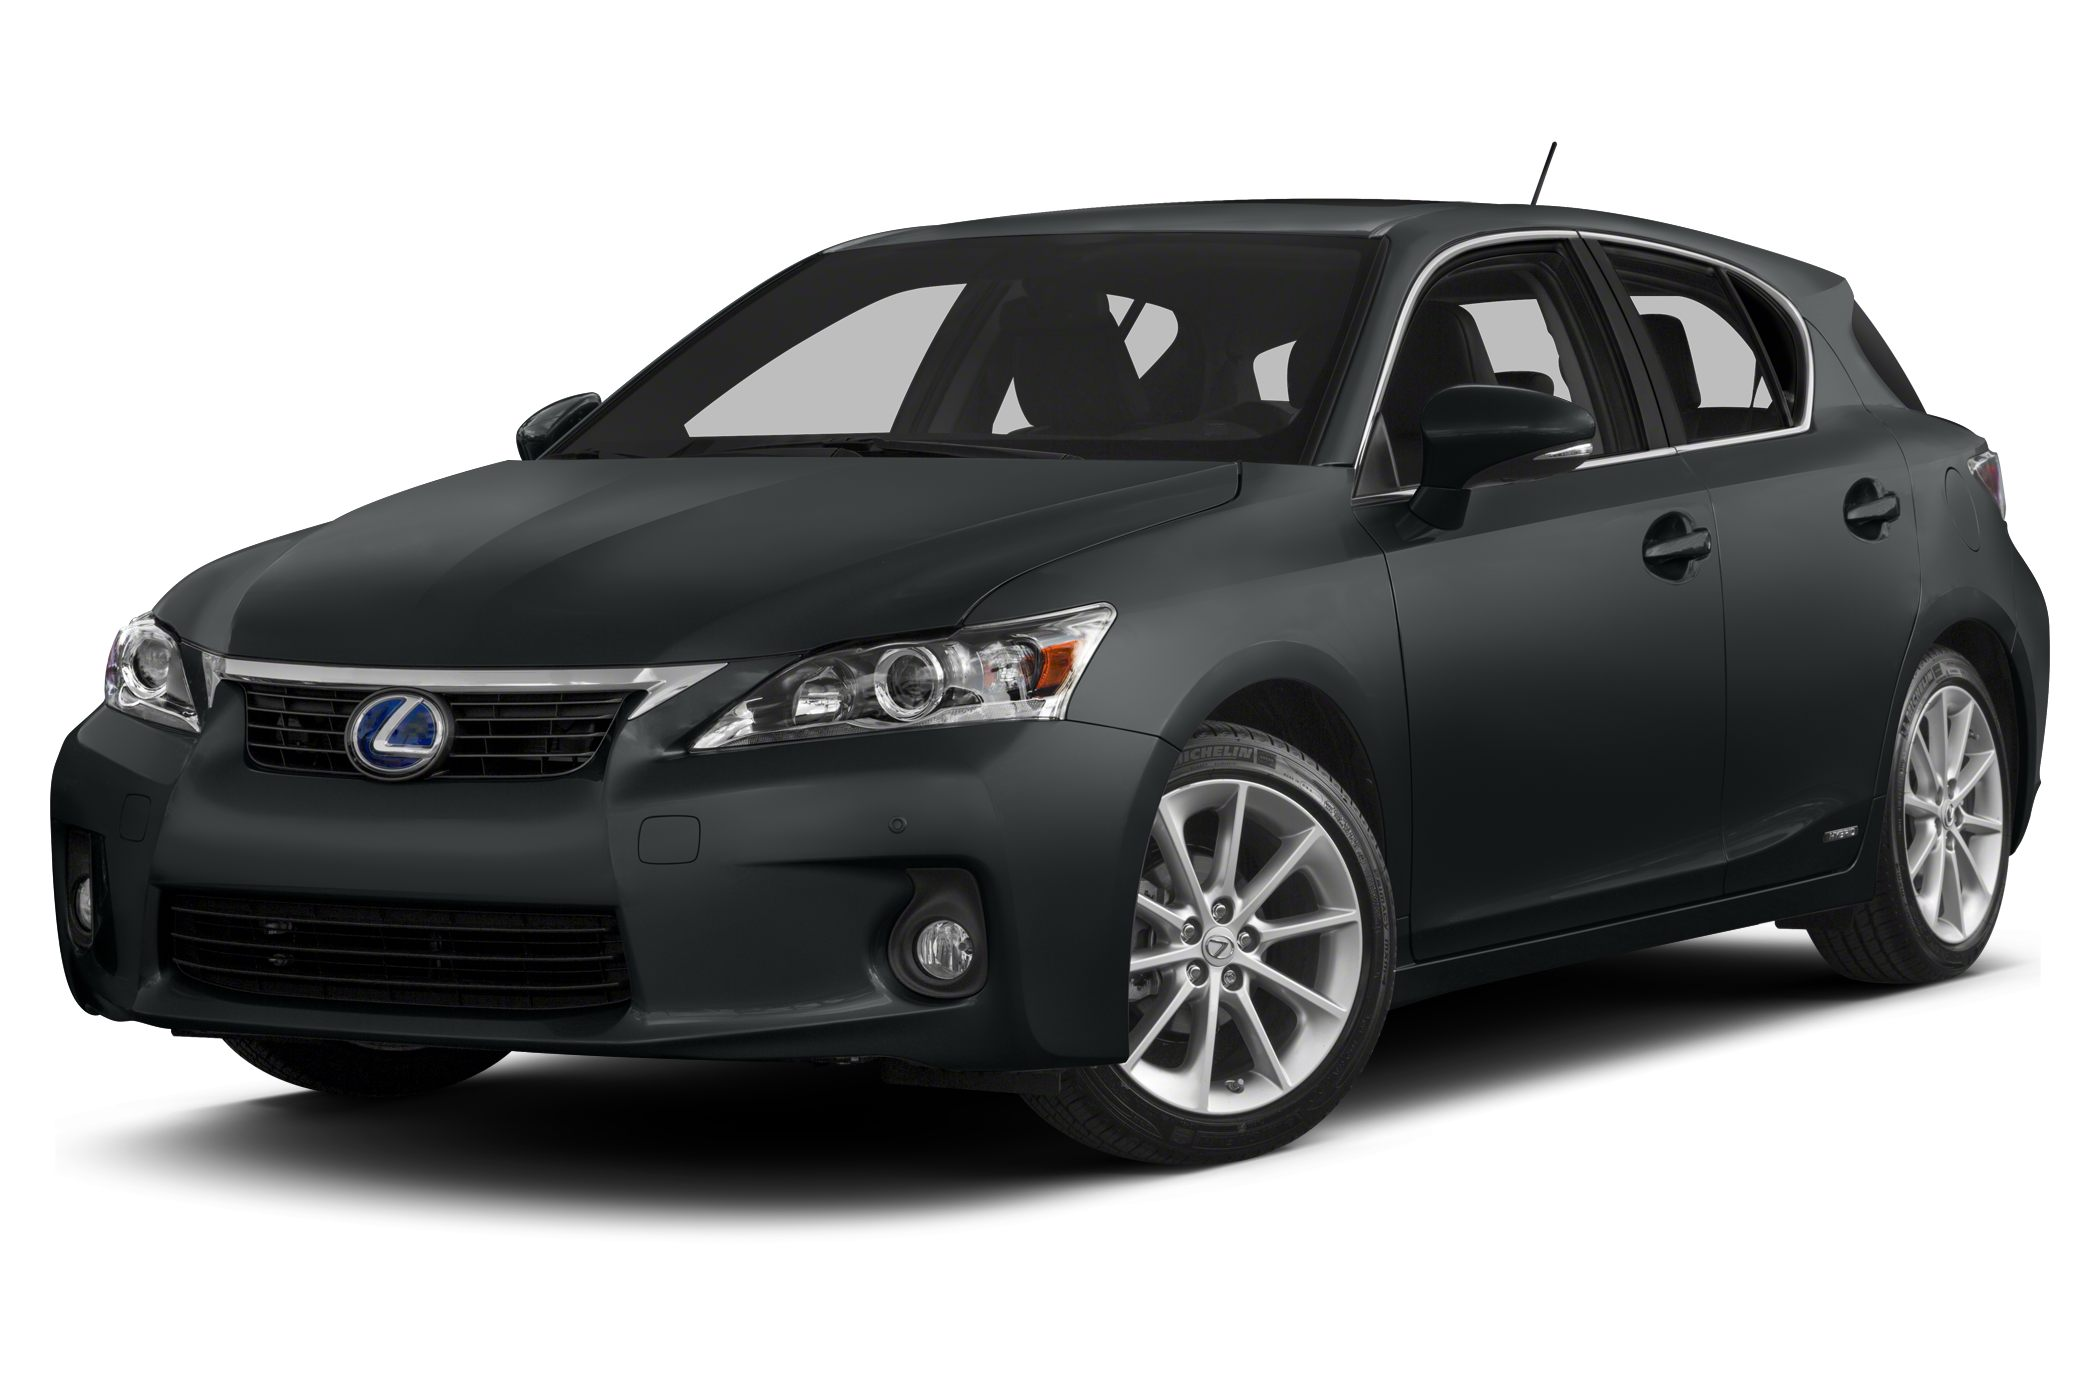 2013 Lexus CT 200h Premium Hatchback for sale in Anchorage for $28,988 with 18,403 miles.